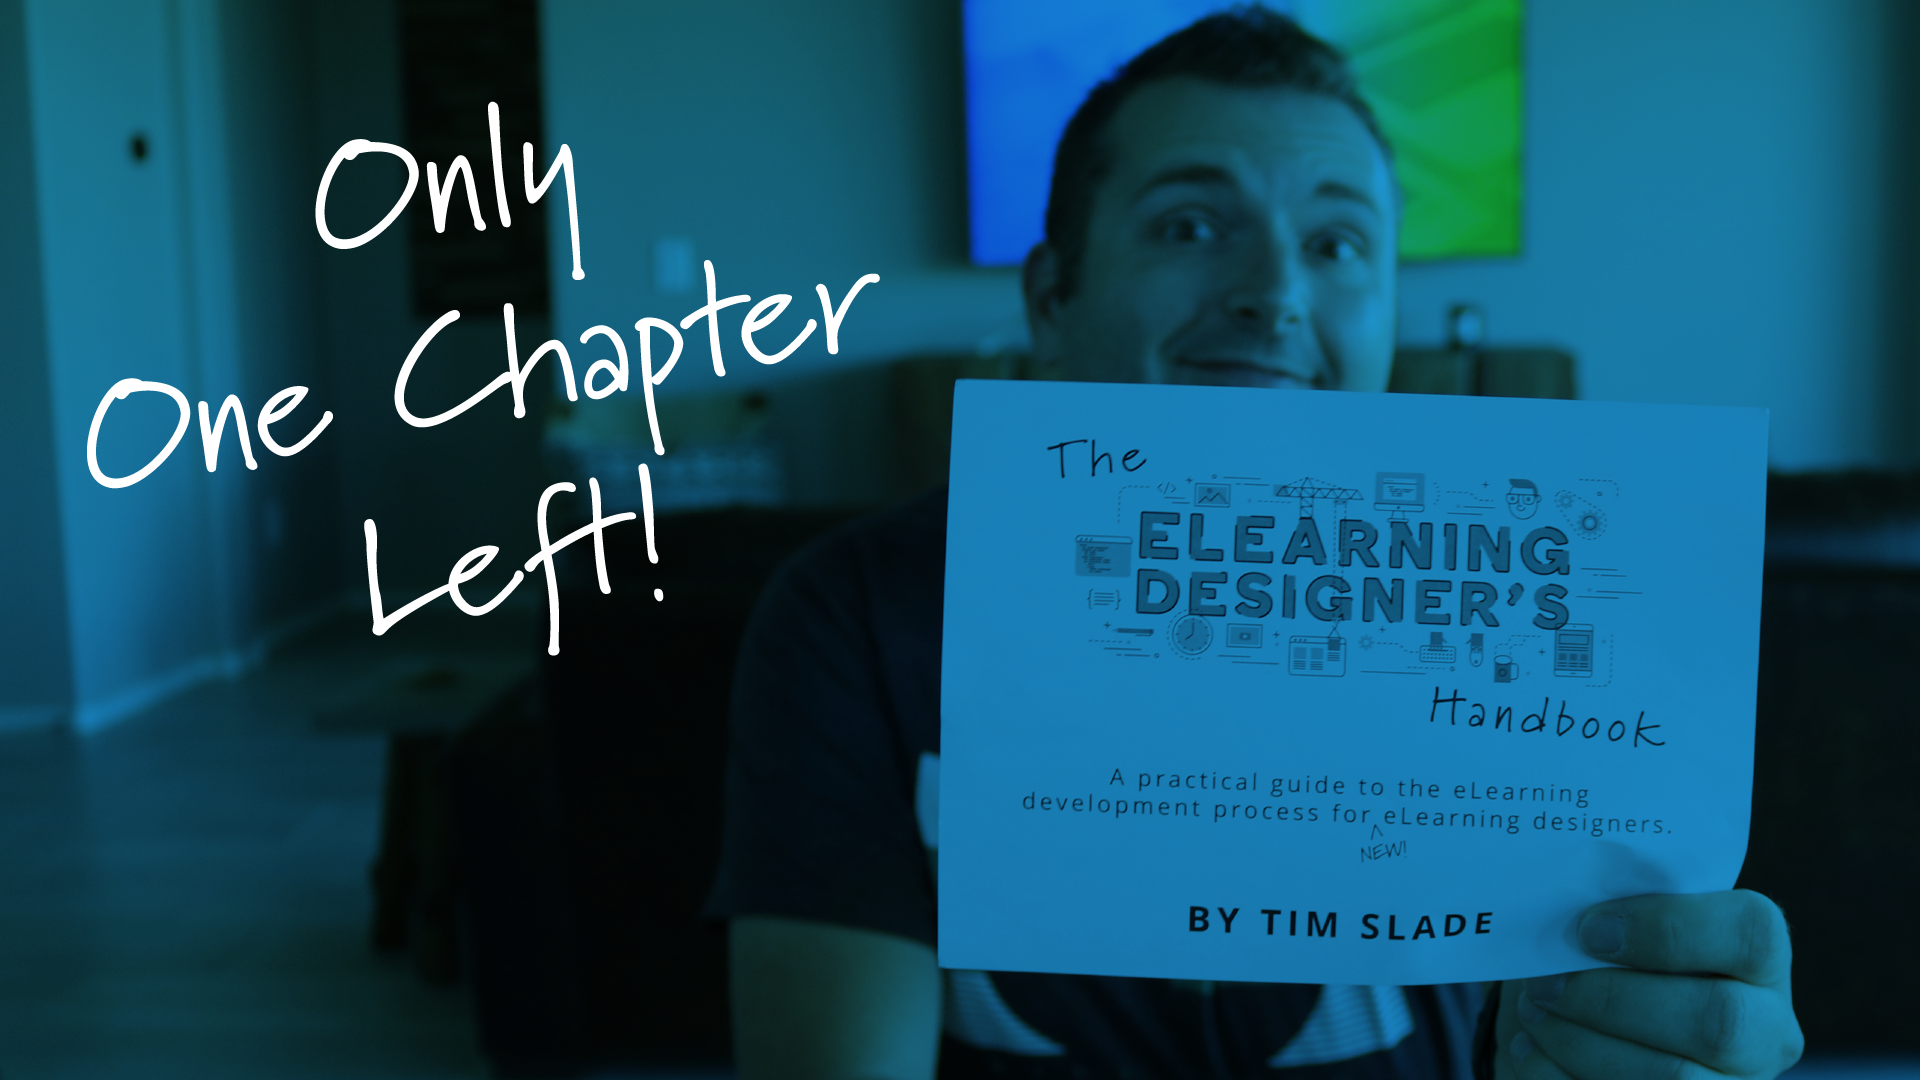 The eLearning Designer's Handbook by Tim Slade